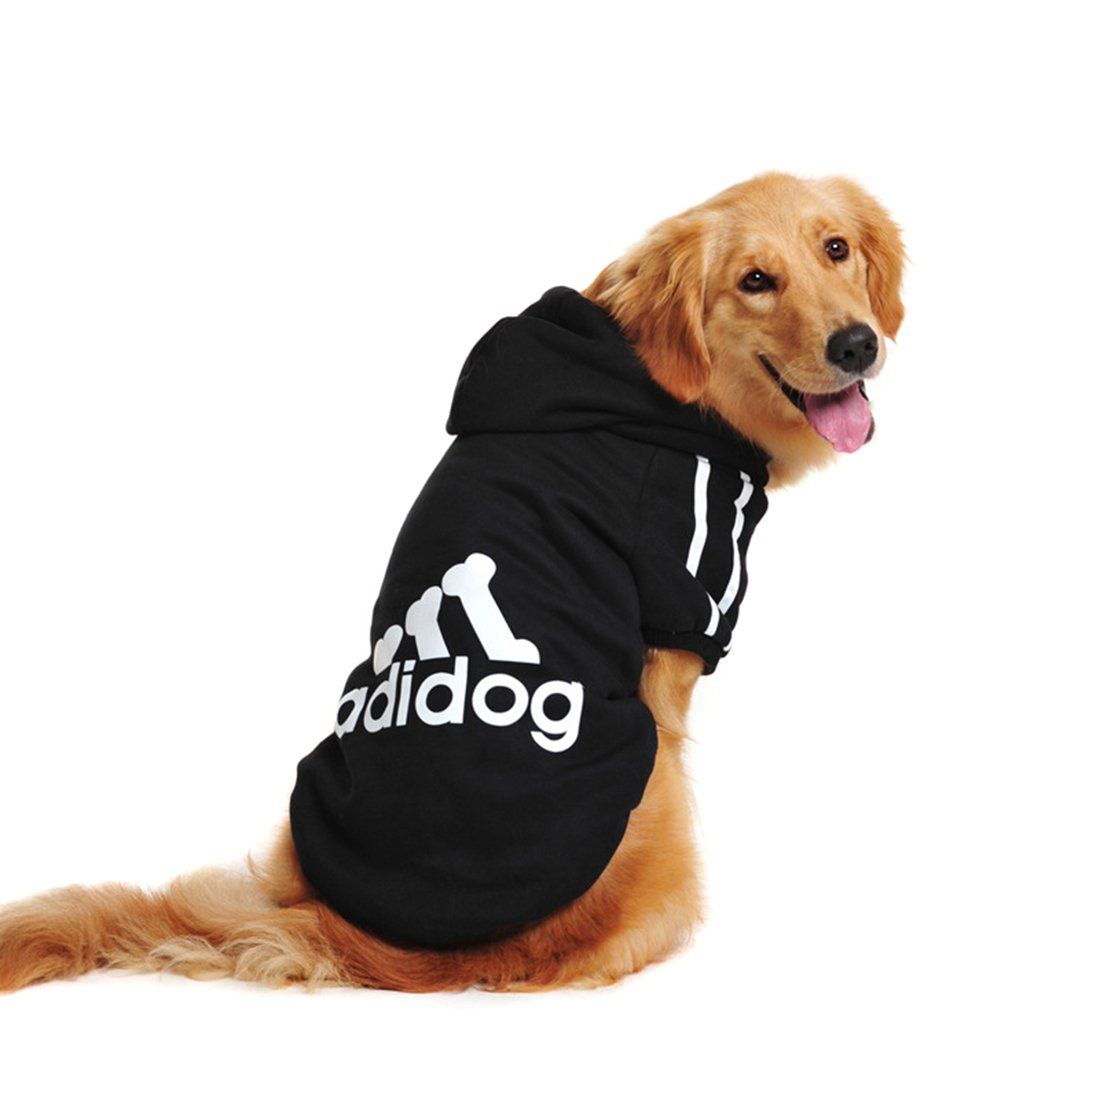 Idepet Spring Autumn Big Dog Clothes Coat Jacket Clothing for Dogs Large Size Golden Retriever Labrador 3XL-9XL Adidog Hoodie (Black, 7XL)